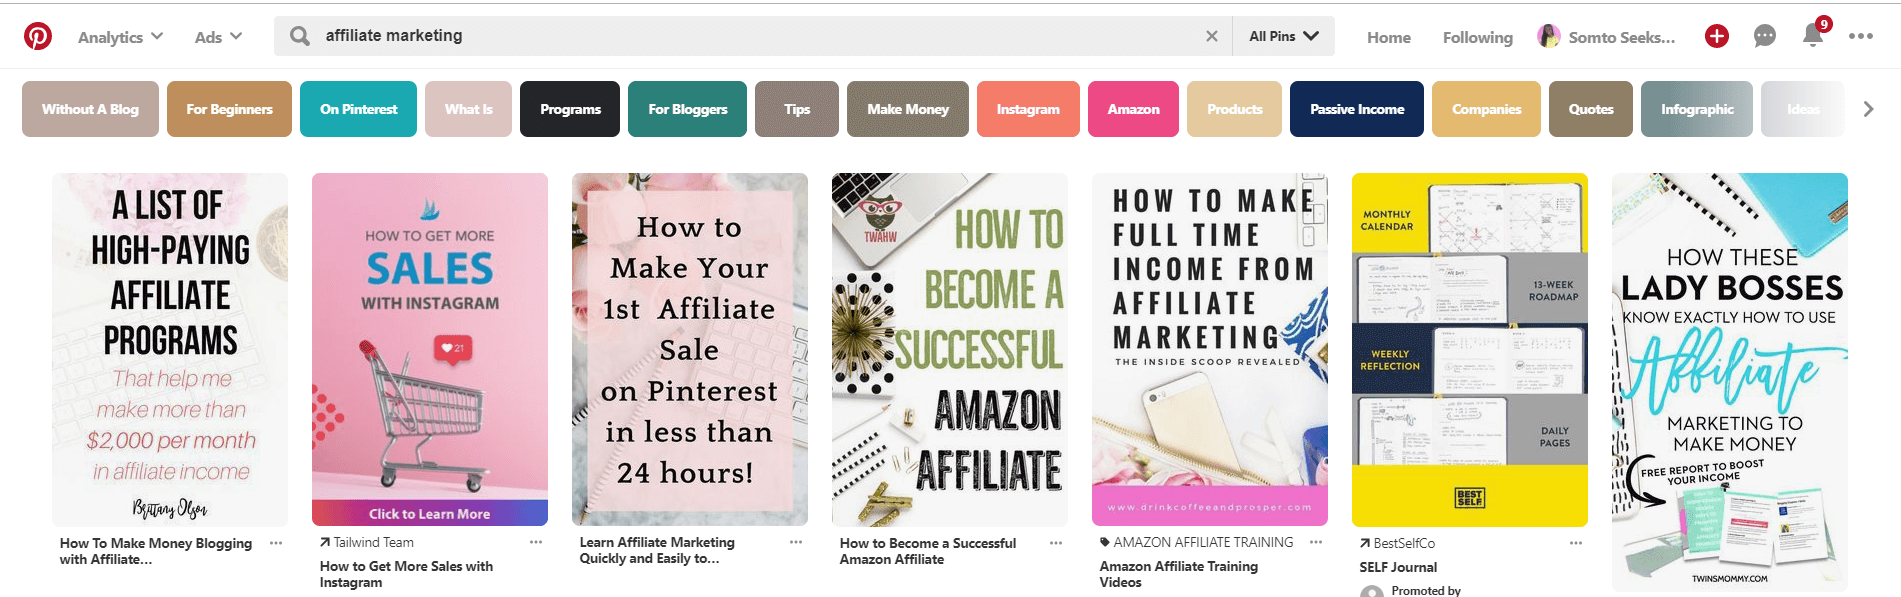 How to make money with affiliate links - Pinterest keyword search